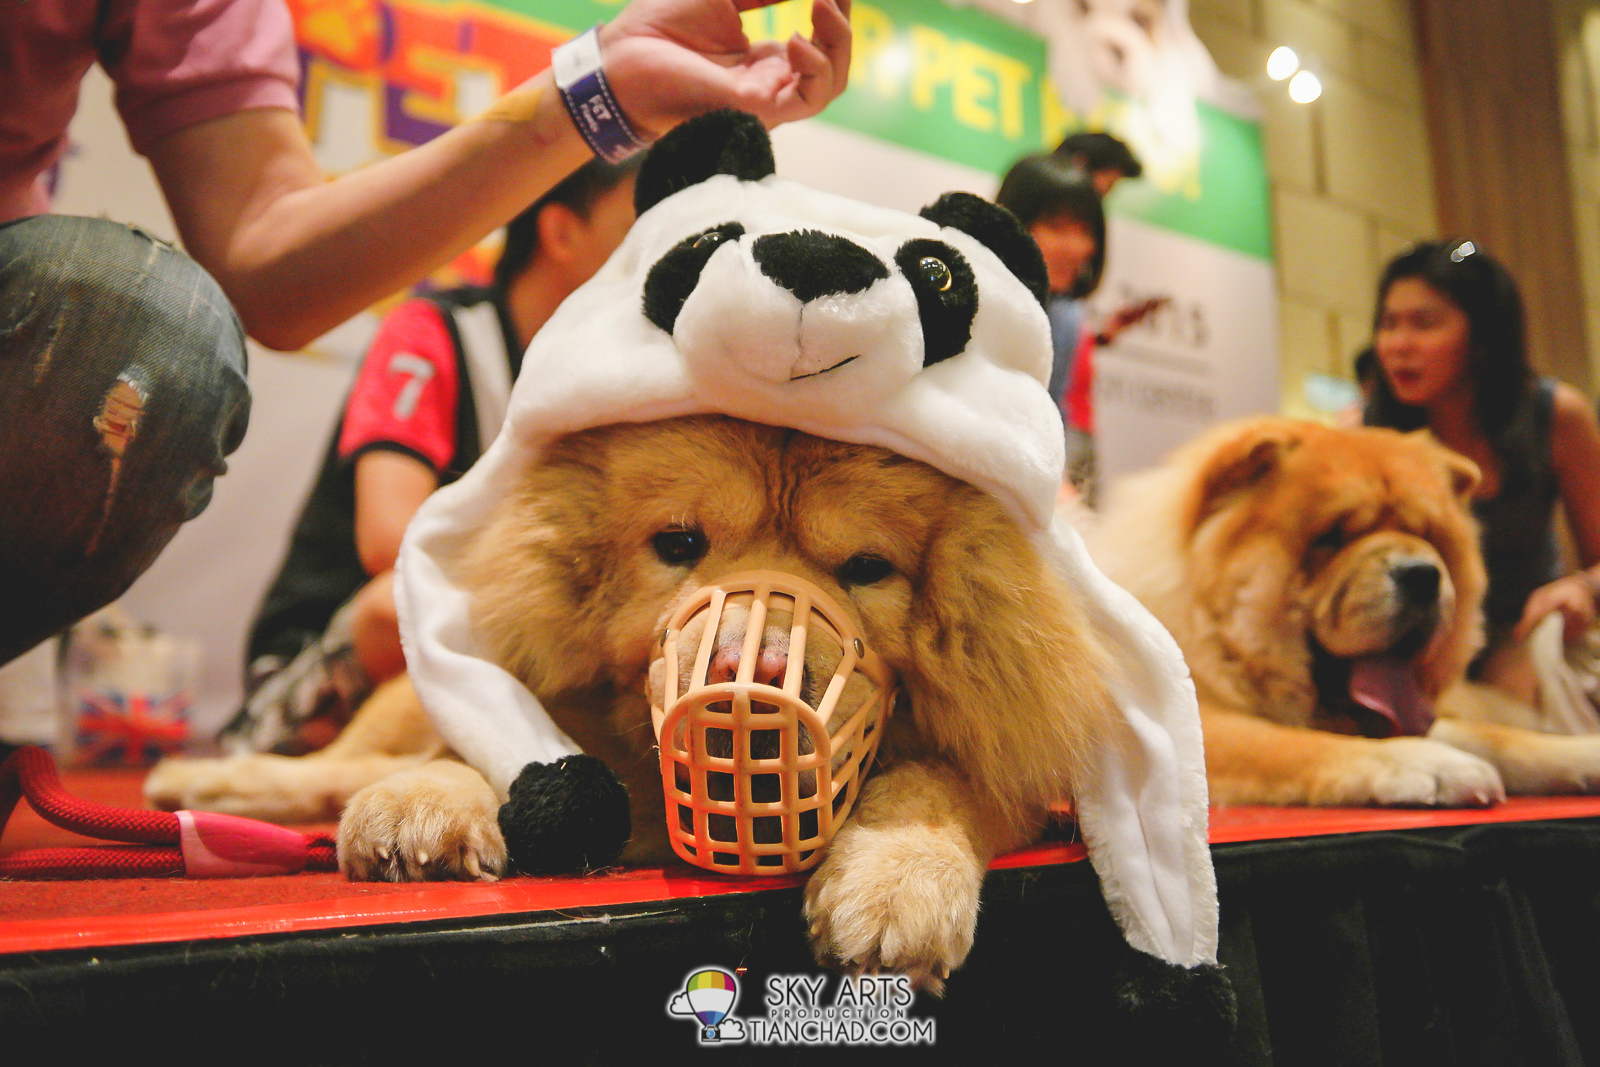 I wonder why this Chow Chow need to has his mouth covered like Bane. He seems sad